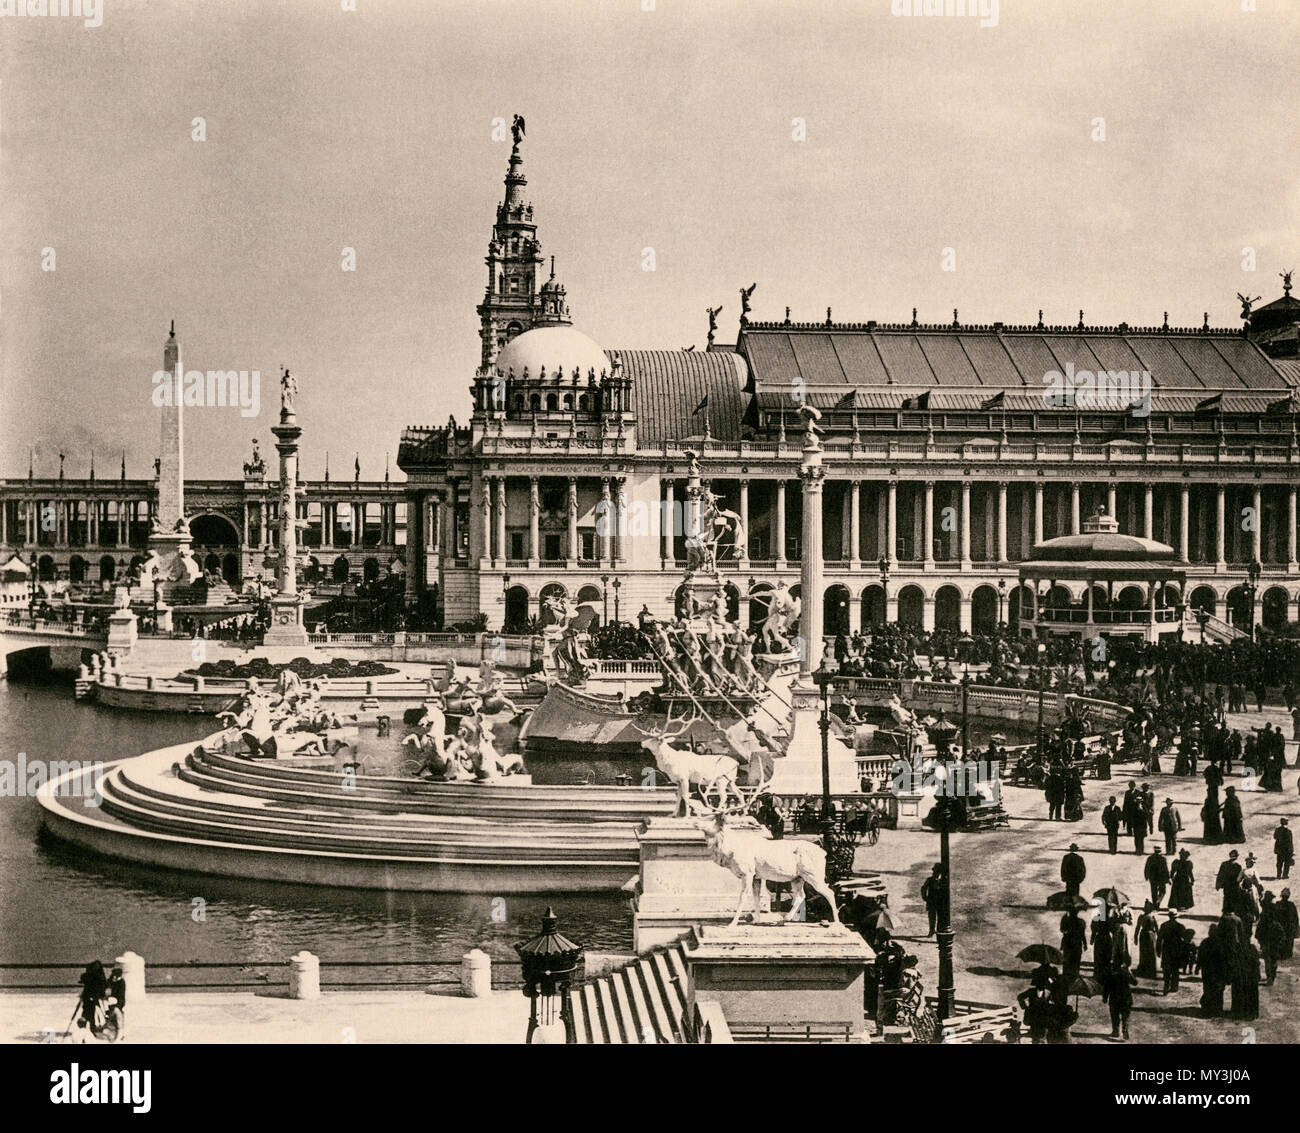 Upper Basin, Obelisk, Machinery Hall and MacMonnies Fountain, Columbian Exposition, Chicago 1893. Albertype (photograph) - Stock Image